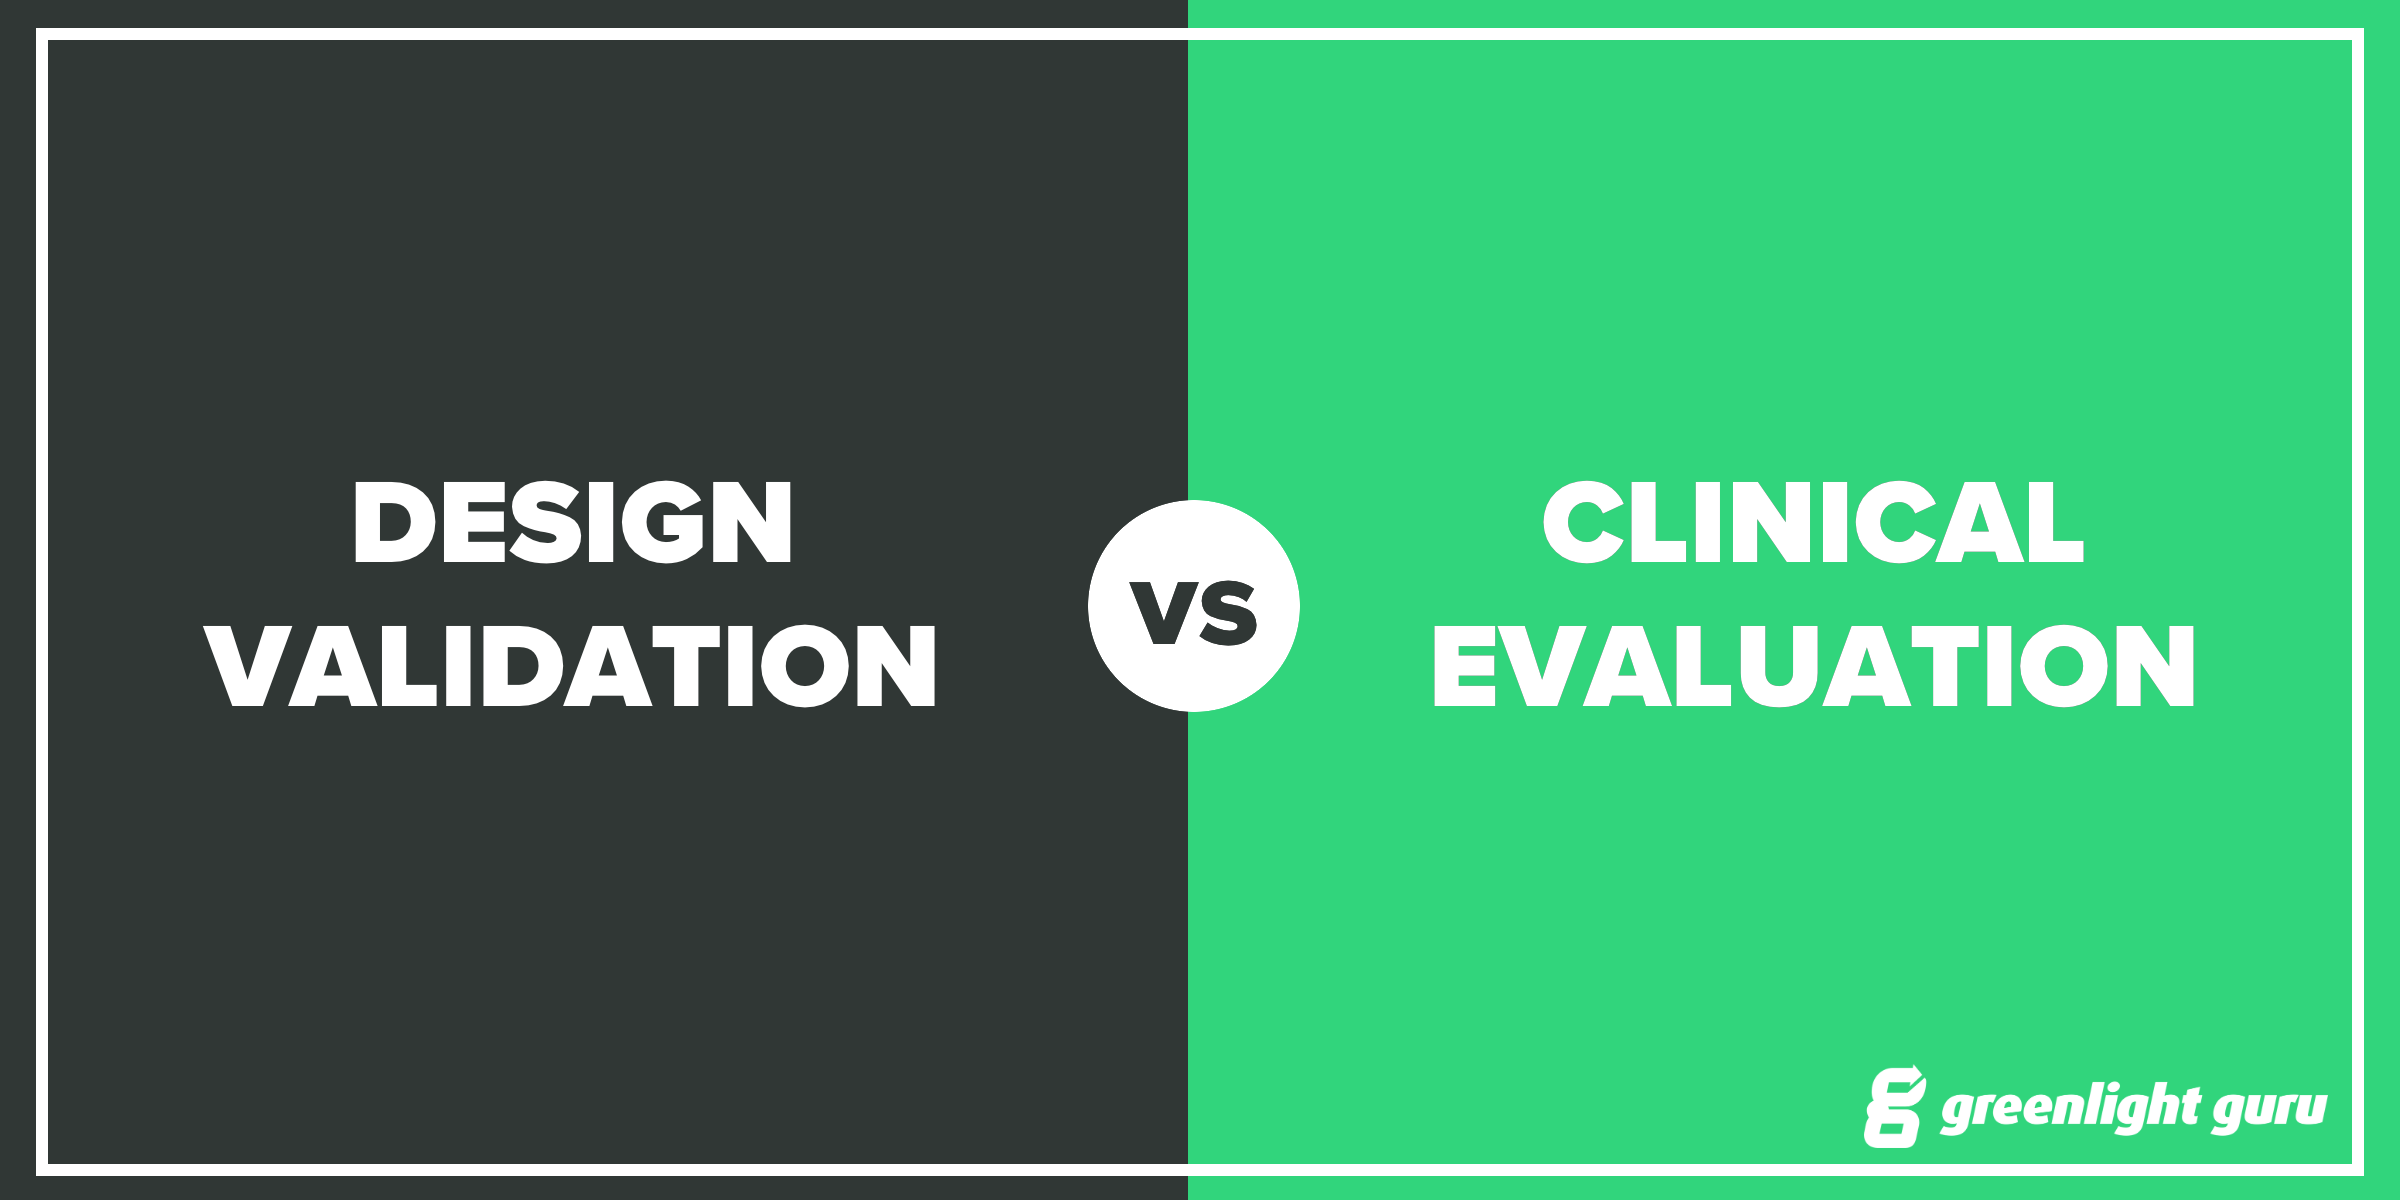 design validation vs clinical evaluation